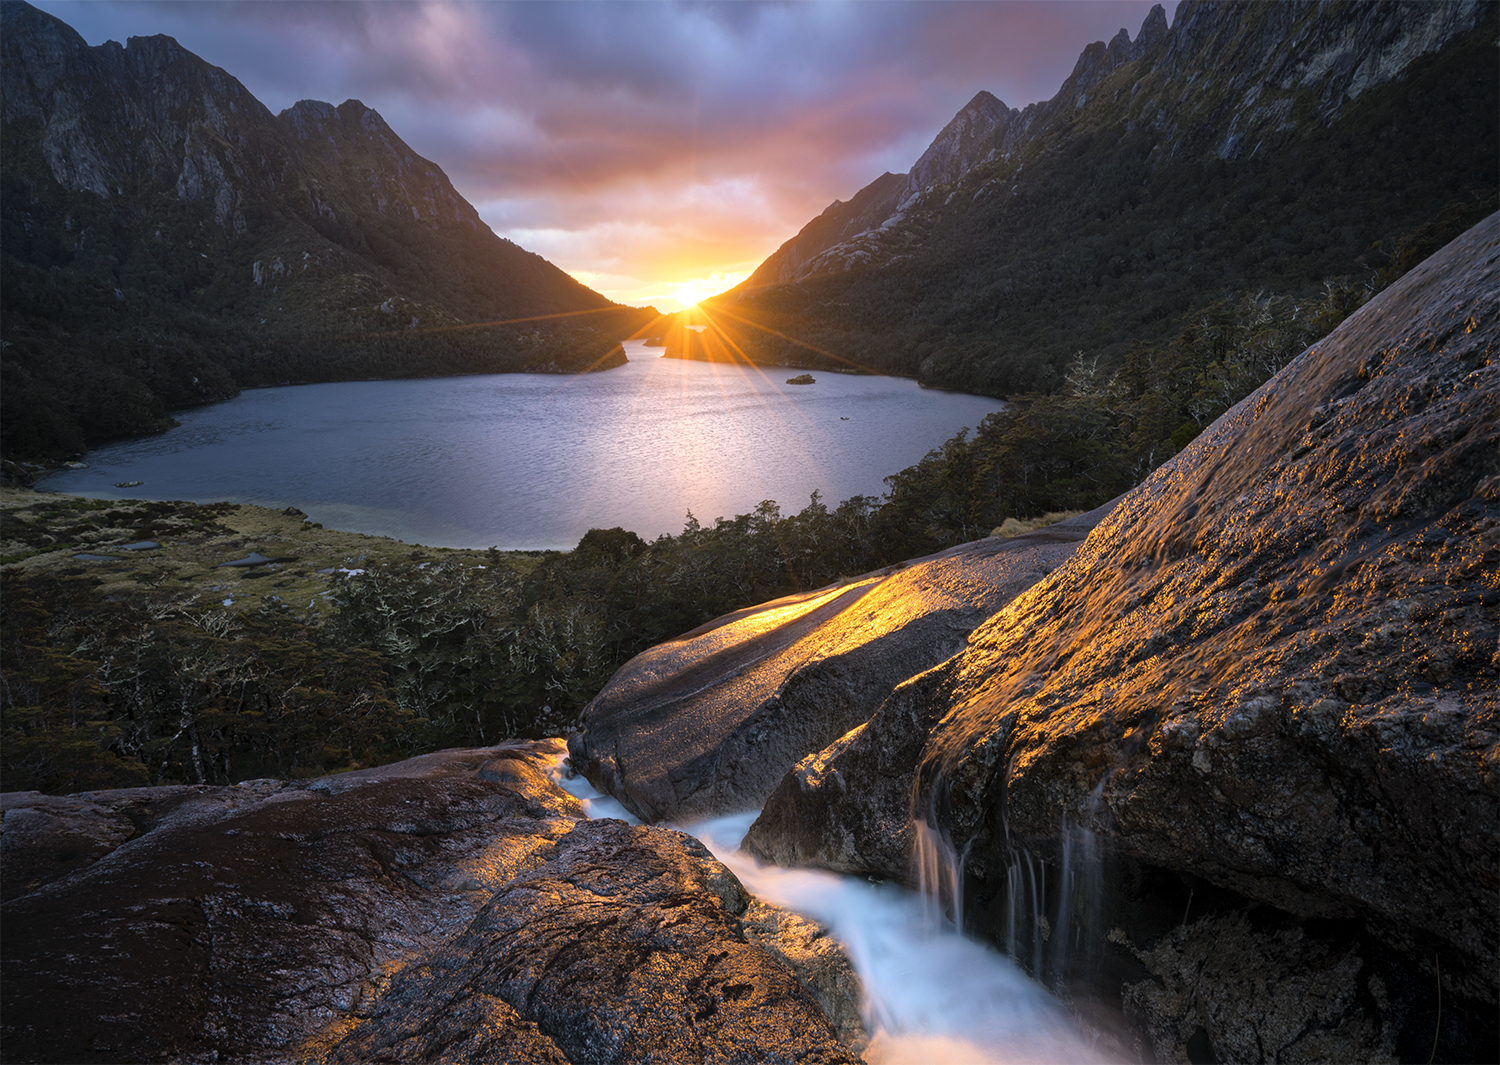 William_Patino_Photography_NewZealand_Norwest_Lakes-copy